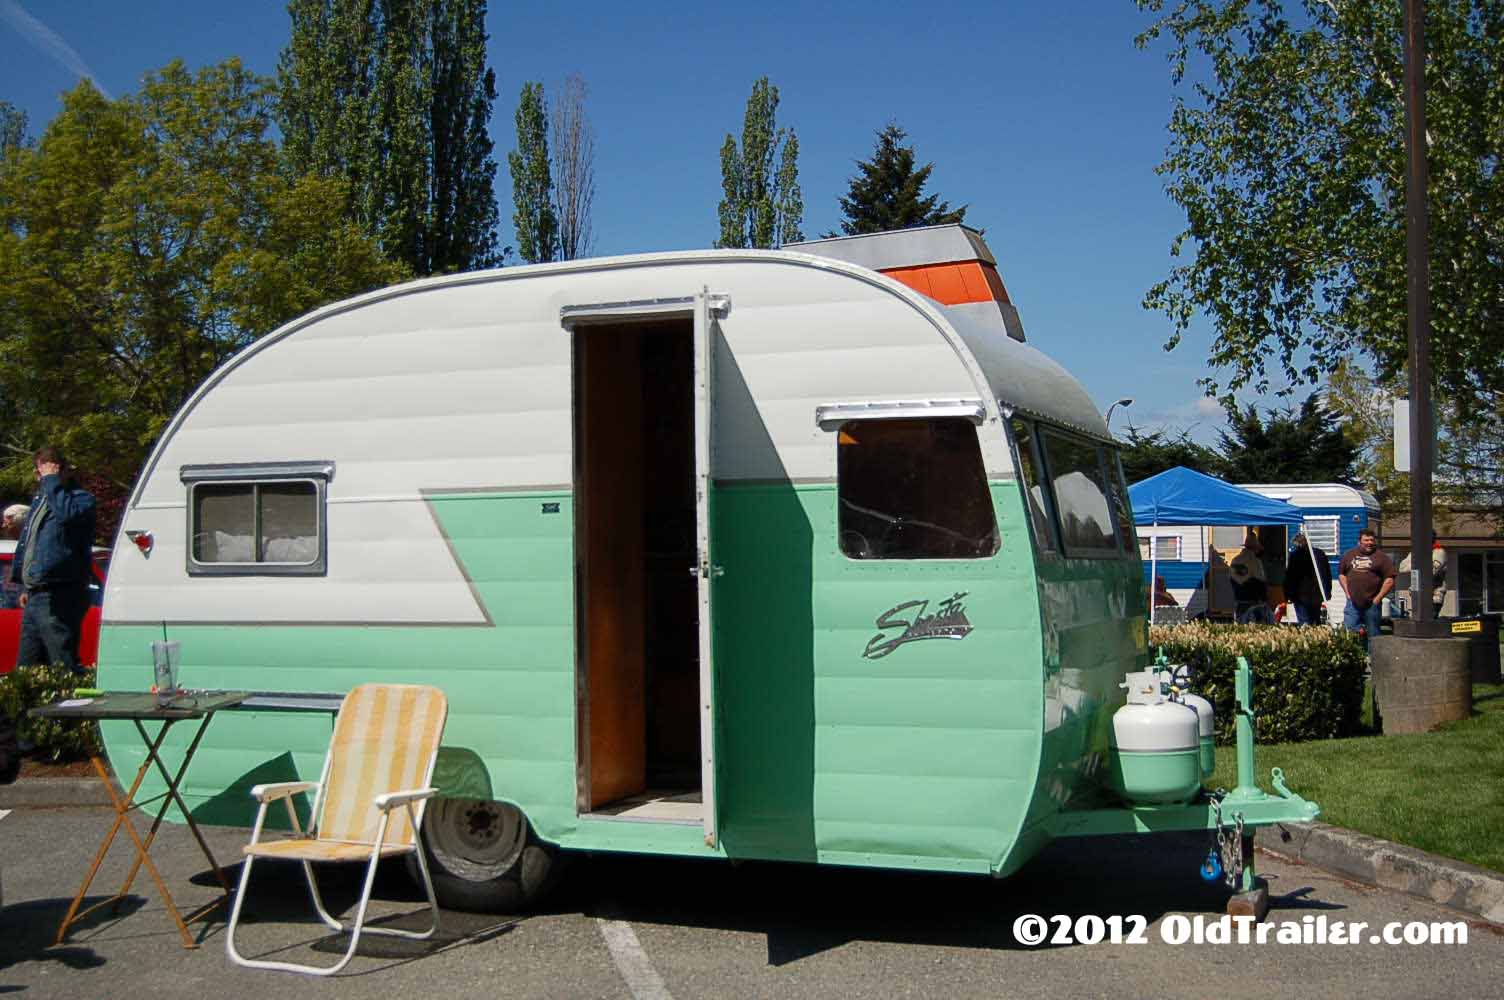 hight resolution of classic 1956 shasta trailer ready for camping